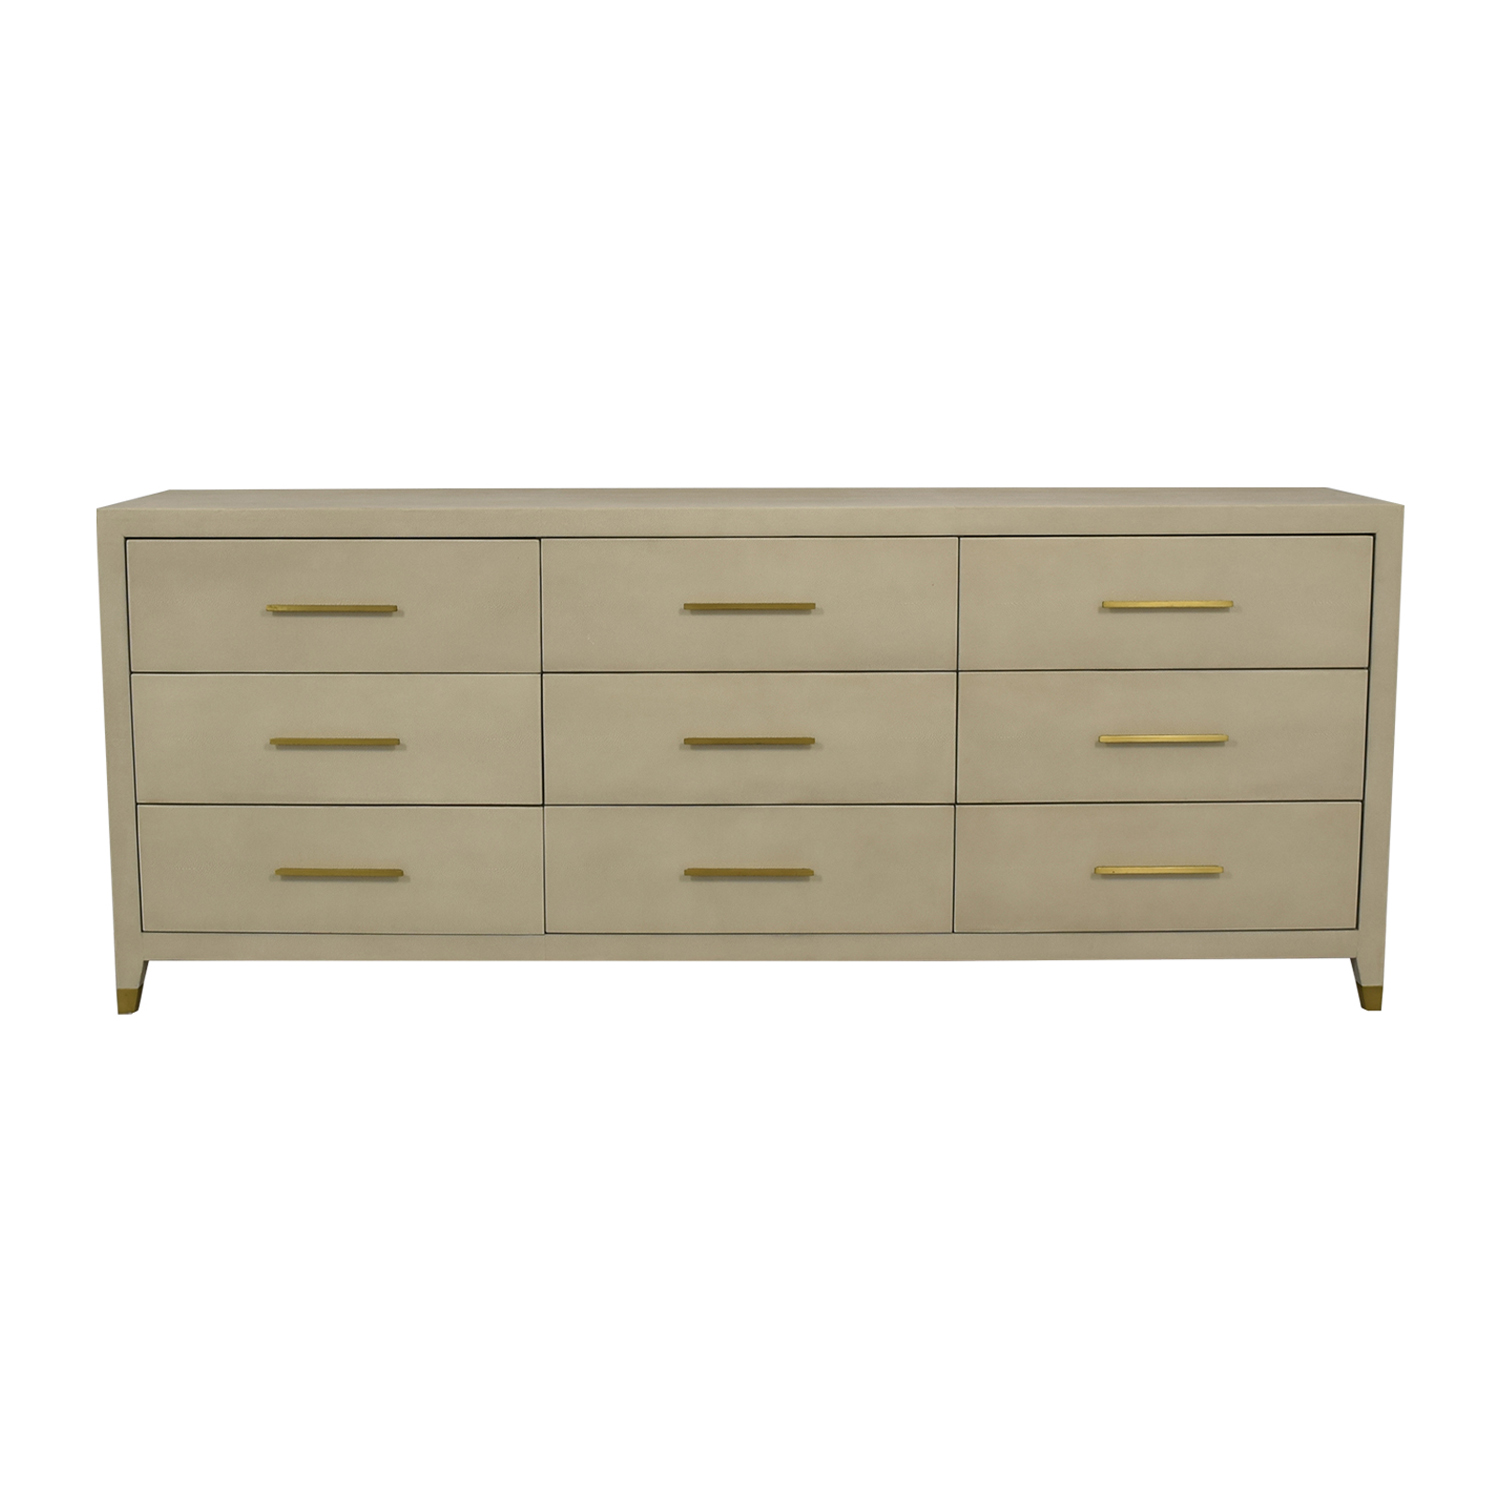 Restoration Hardware Restoration Hardware Graydon Bone Shagreen Nine-Drawer Dresser